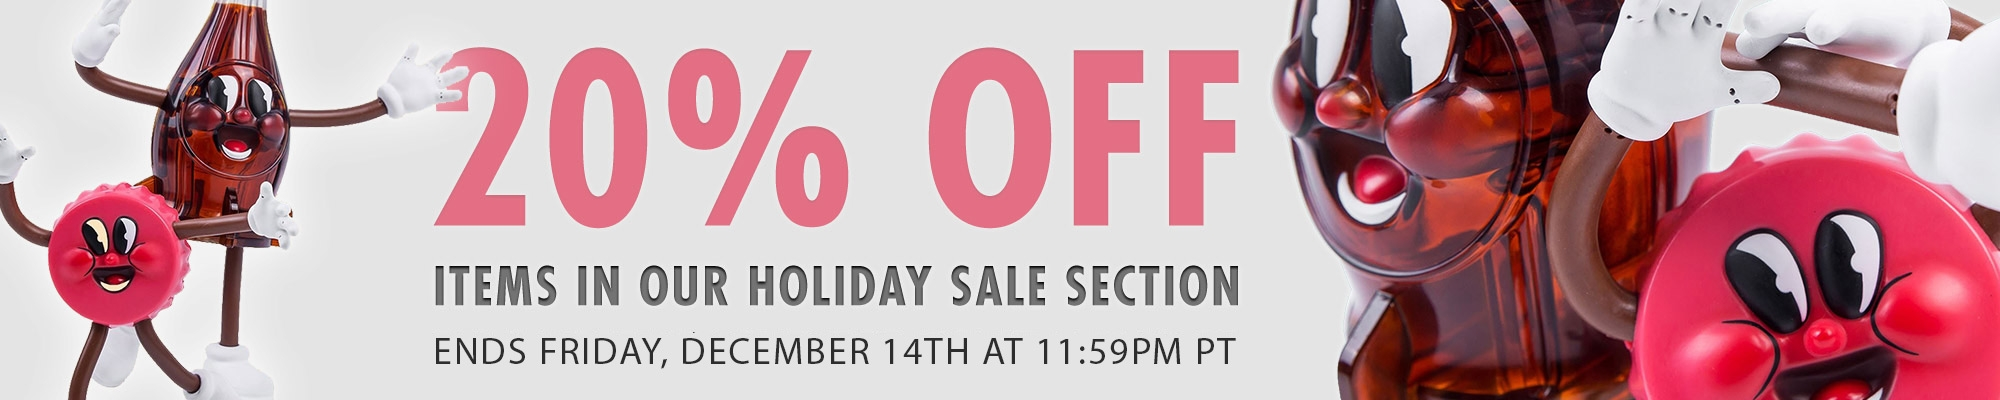 Get 20% Off Items in our Holiday Sale Section! Ends Friday, December 14th at 11:59PM PT